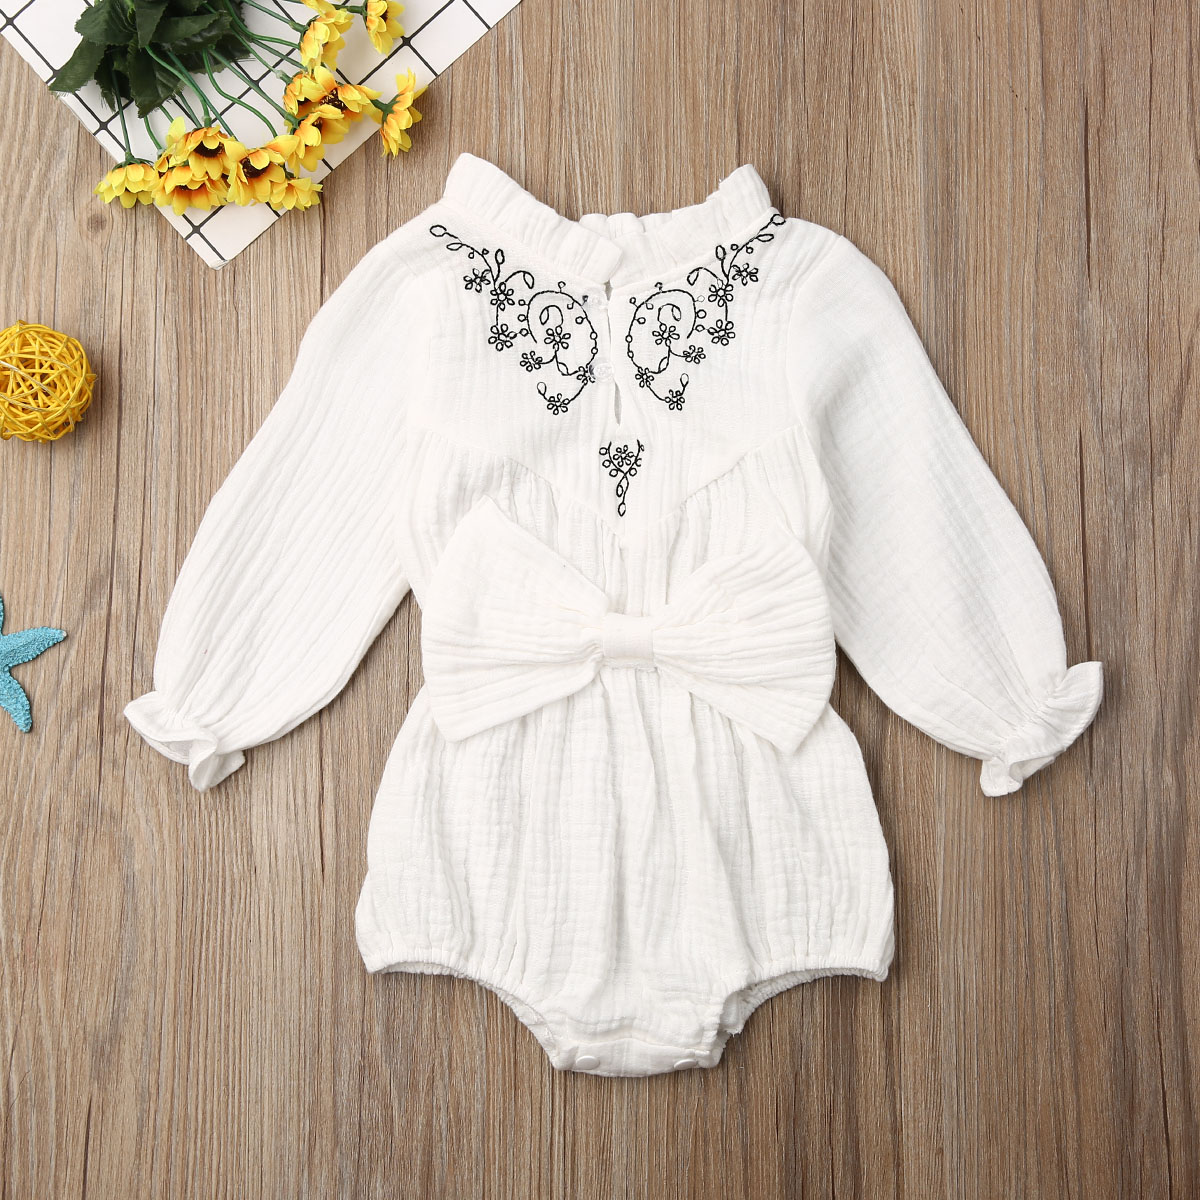 Pudcoco Newborn Baby Girl Clothes Solid Color Flower Print Long Sleeve Bowknot Romper Jumpsuit One-Piece Outfit Cotton Clothes